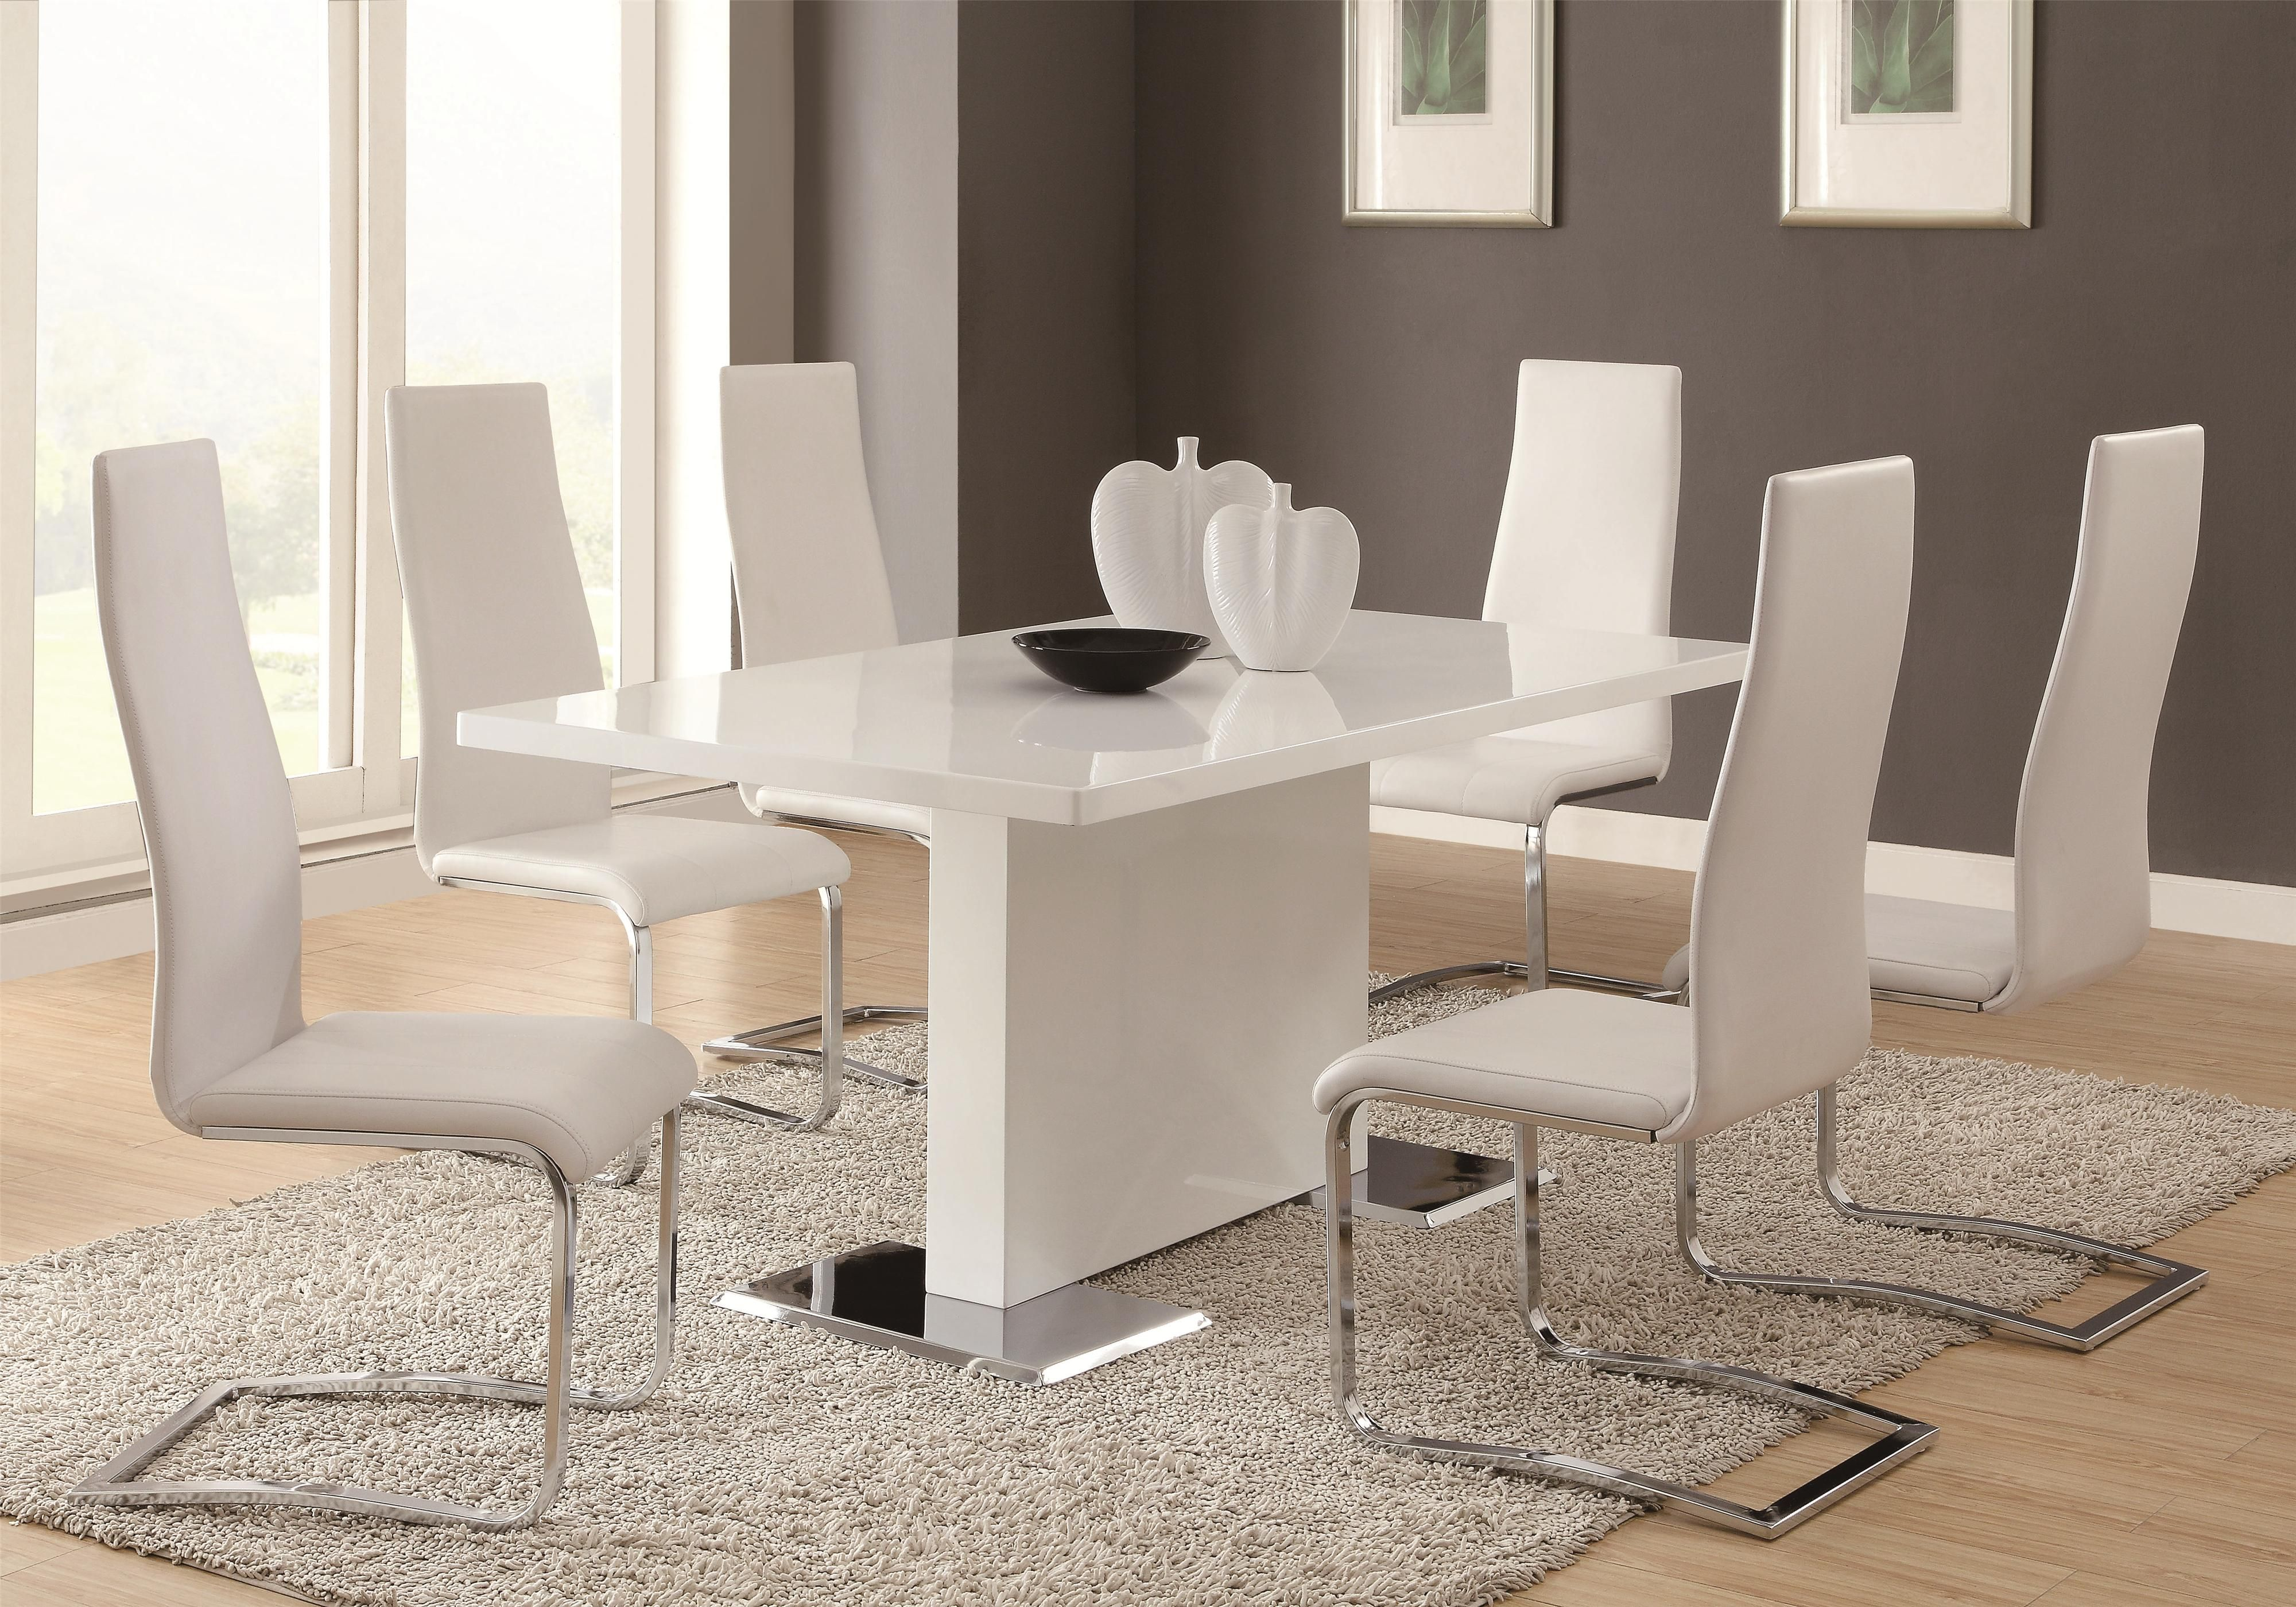 Modern Dining 7 Piece Table Modern Dining Room Set Contemporary Dining Room Sets White Dining Room